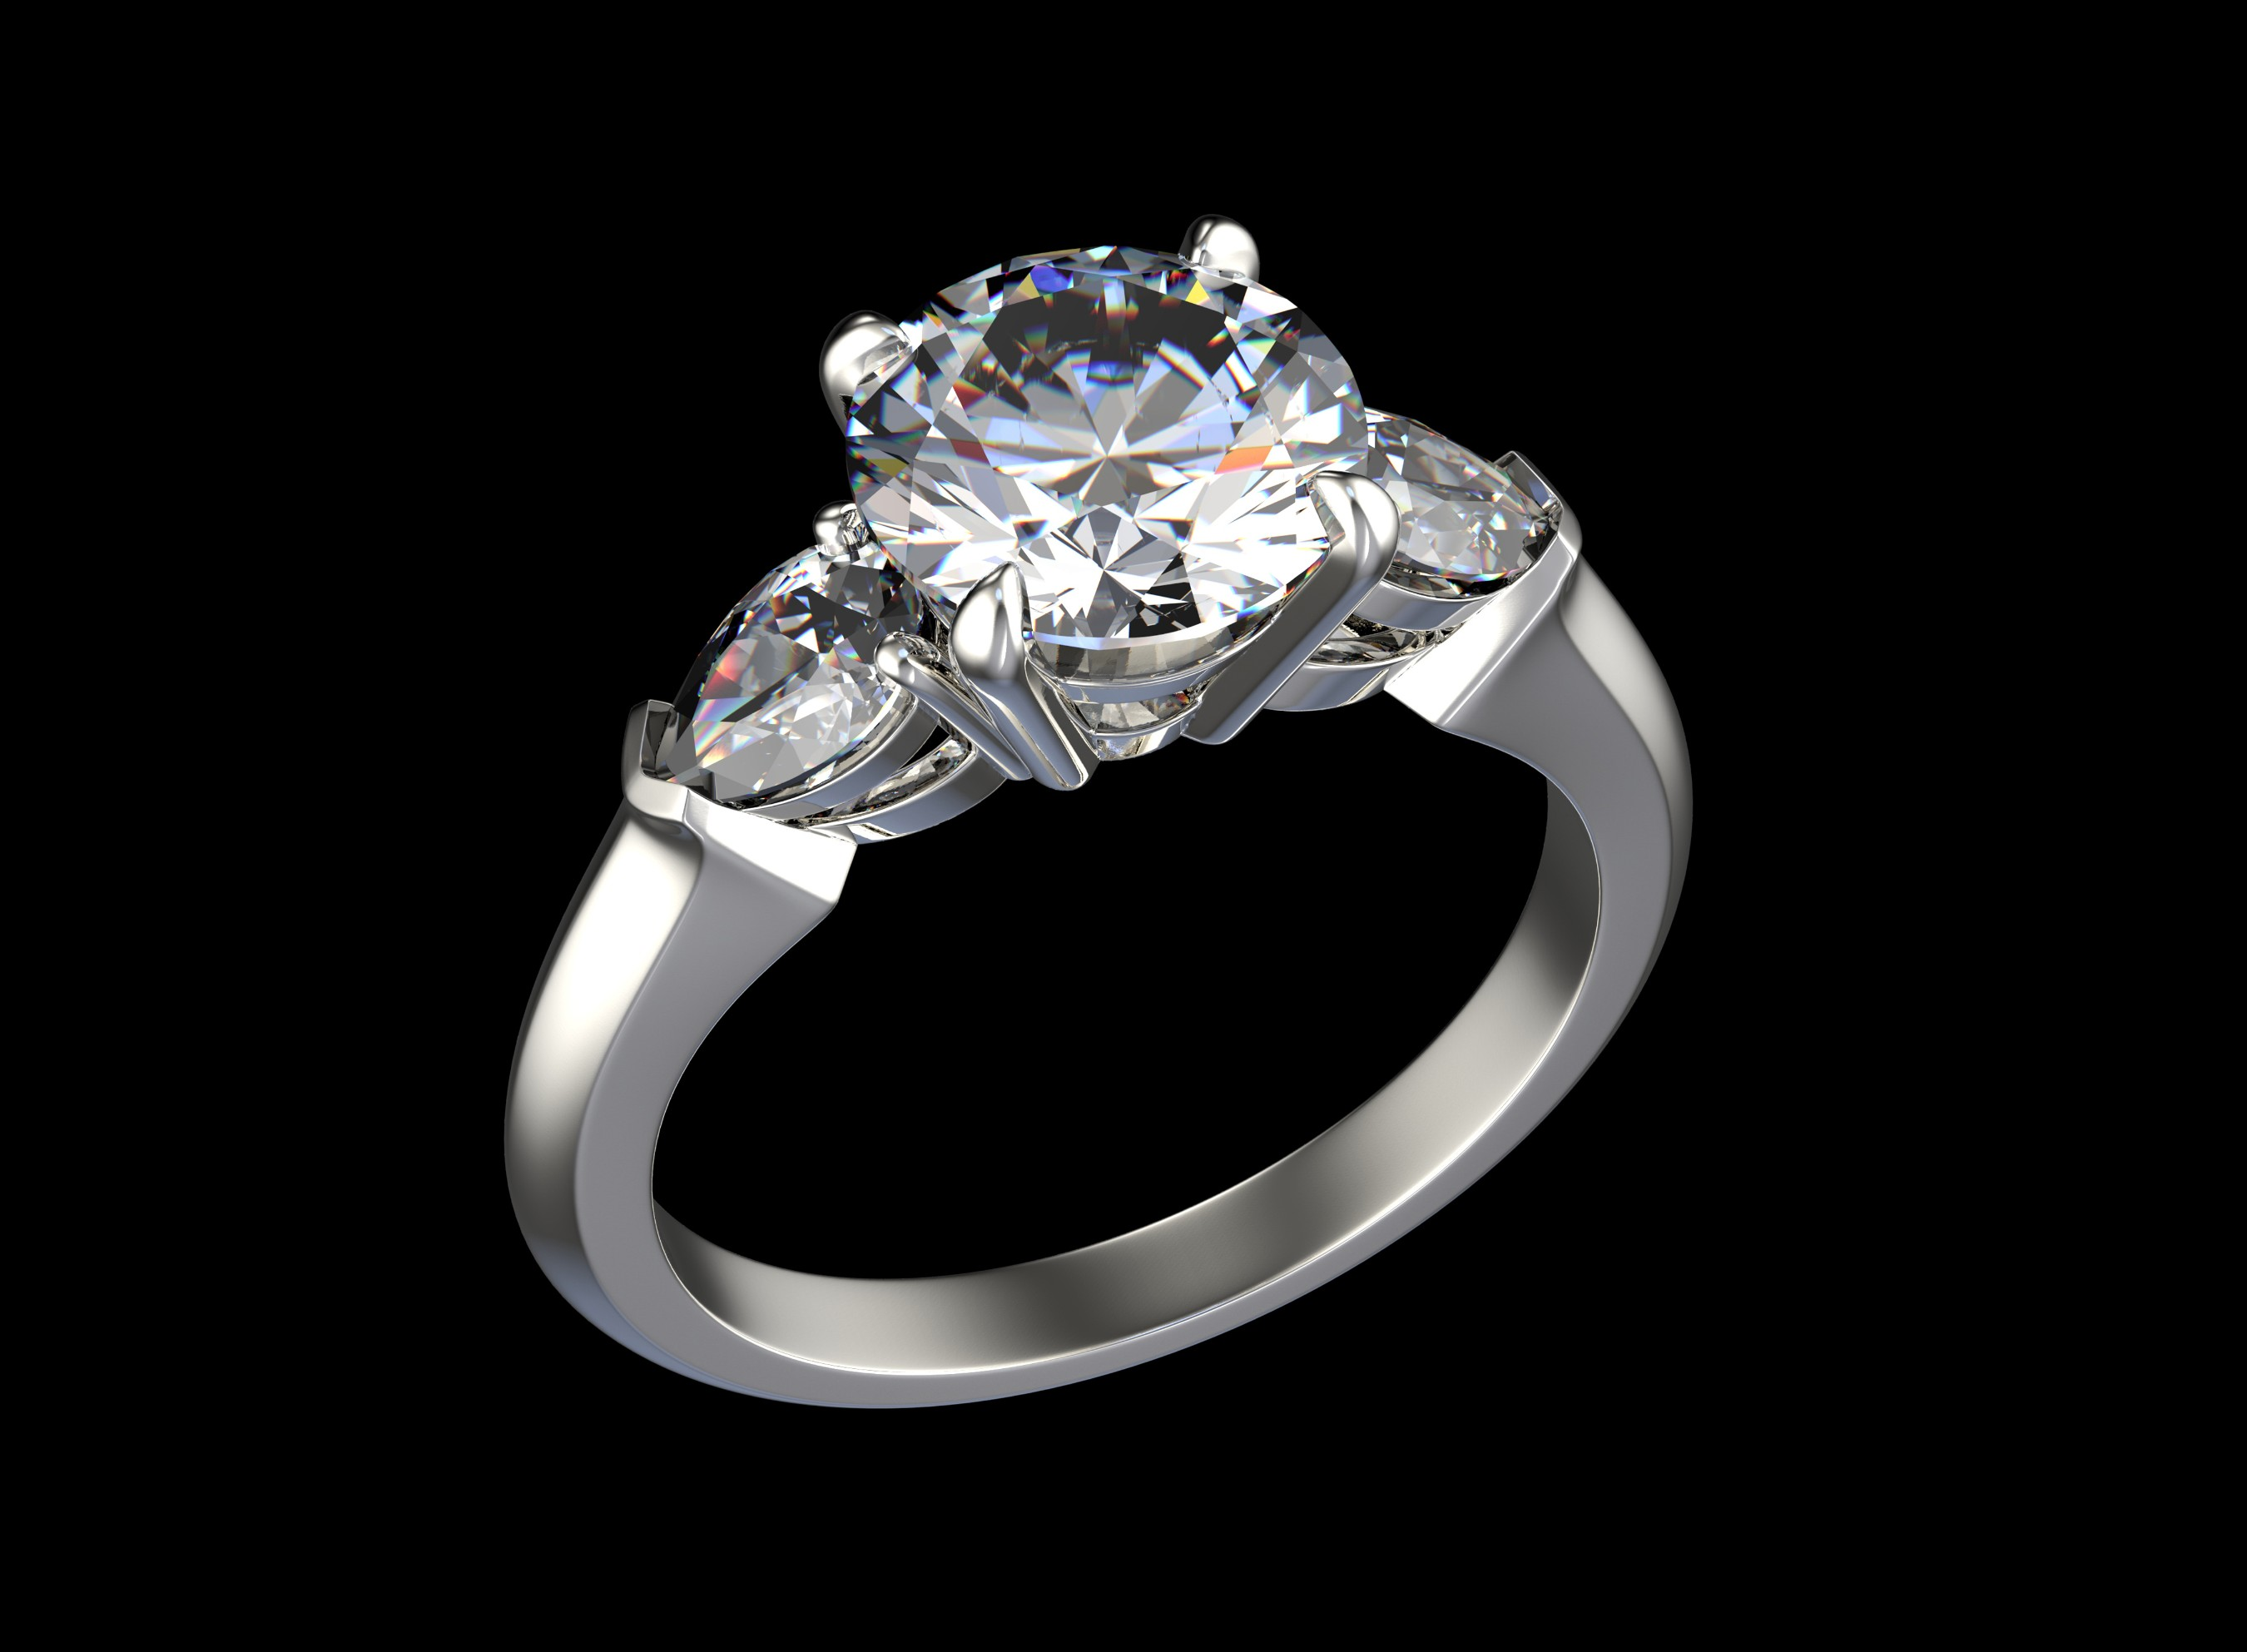 55eeca2c8a4bab choosing the perfect engagement ring